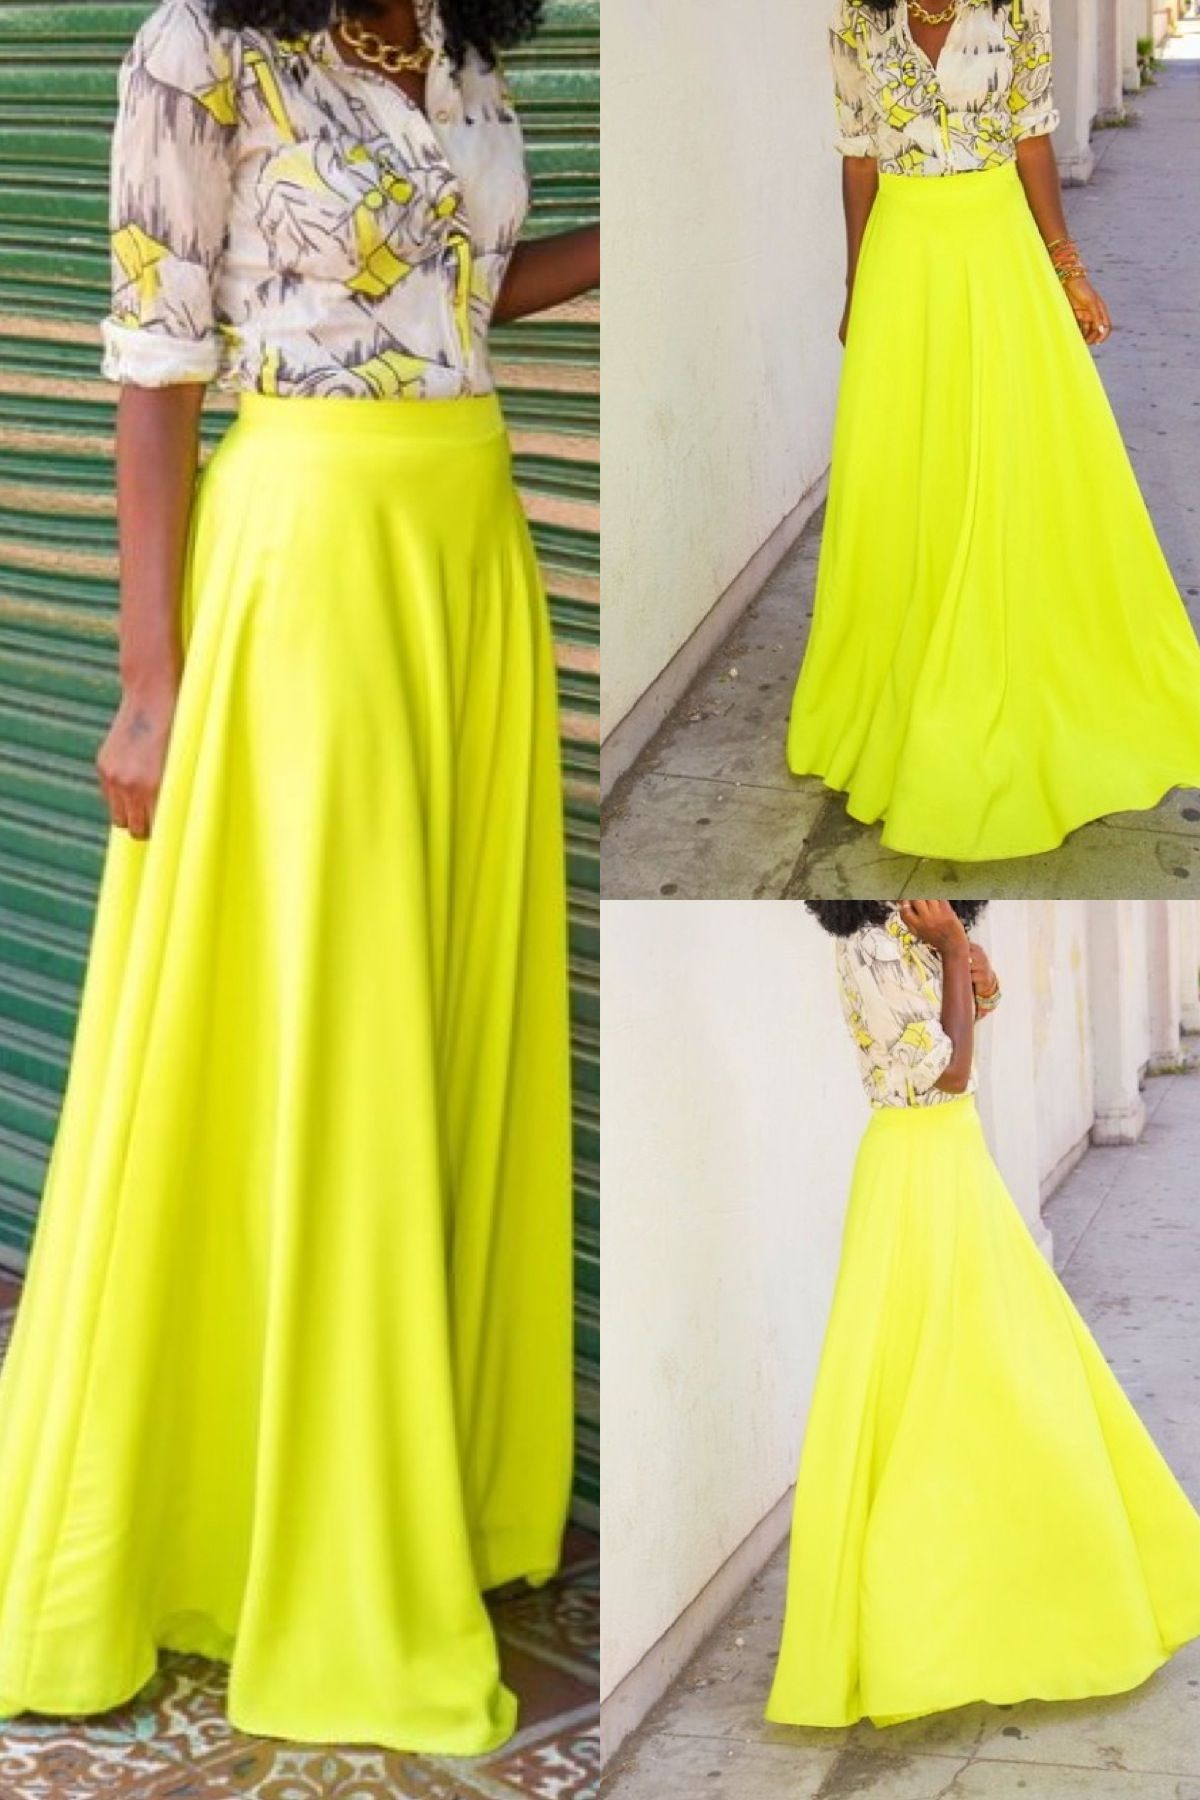 neon maxi skirt with printed blouse look book